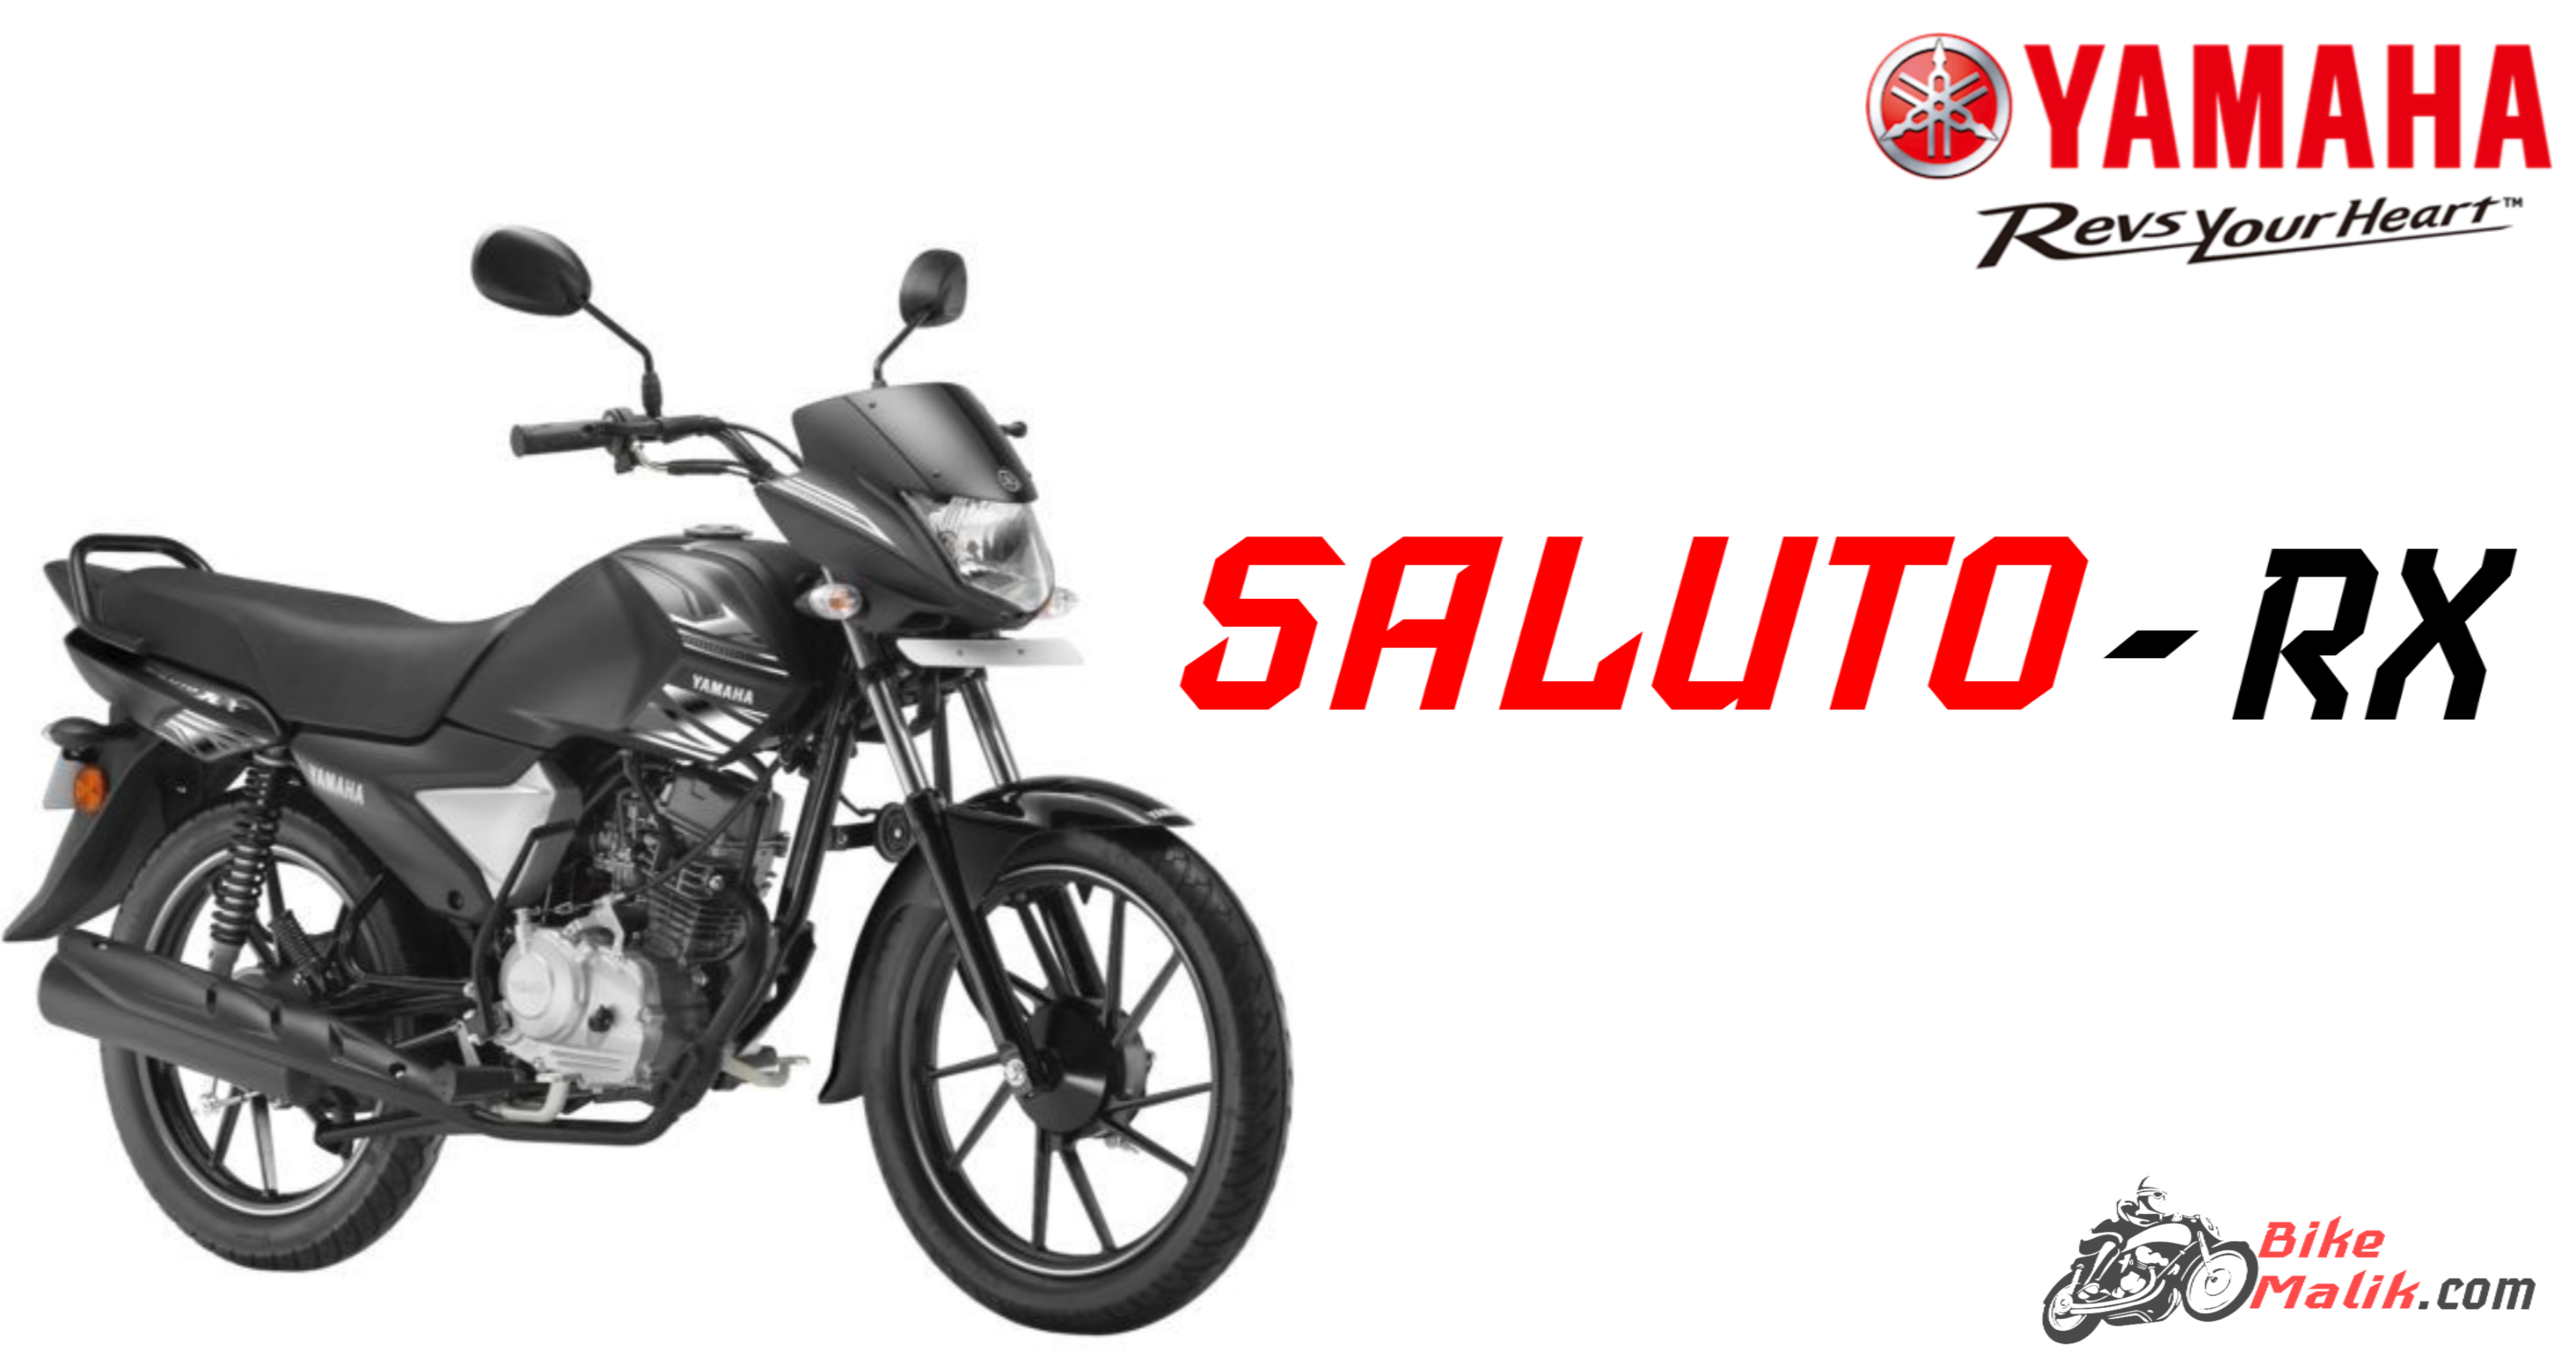 Yamaha Saluto RX Price, Performance, Mileage, Colors, Features, Specs & 360-View India